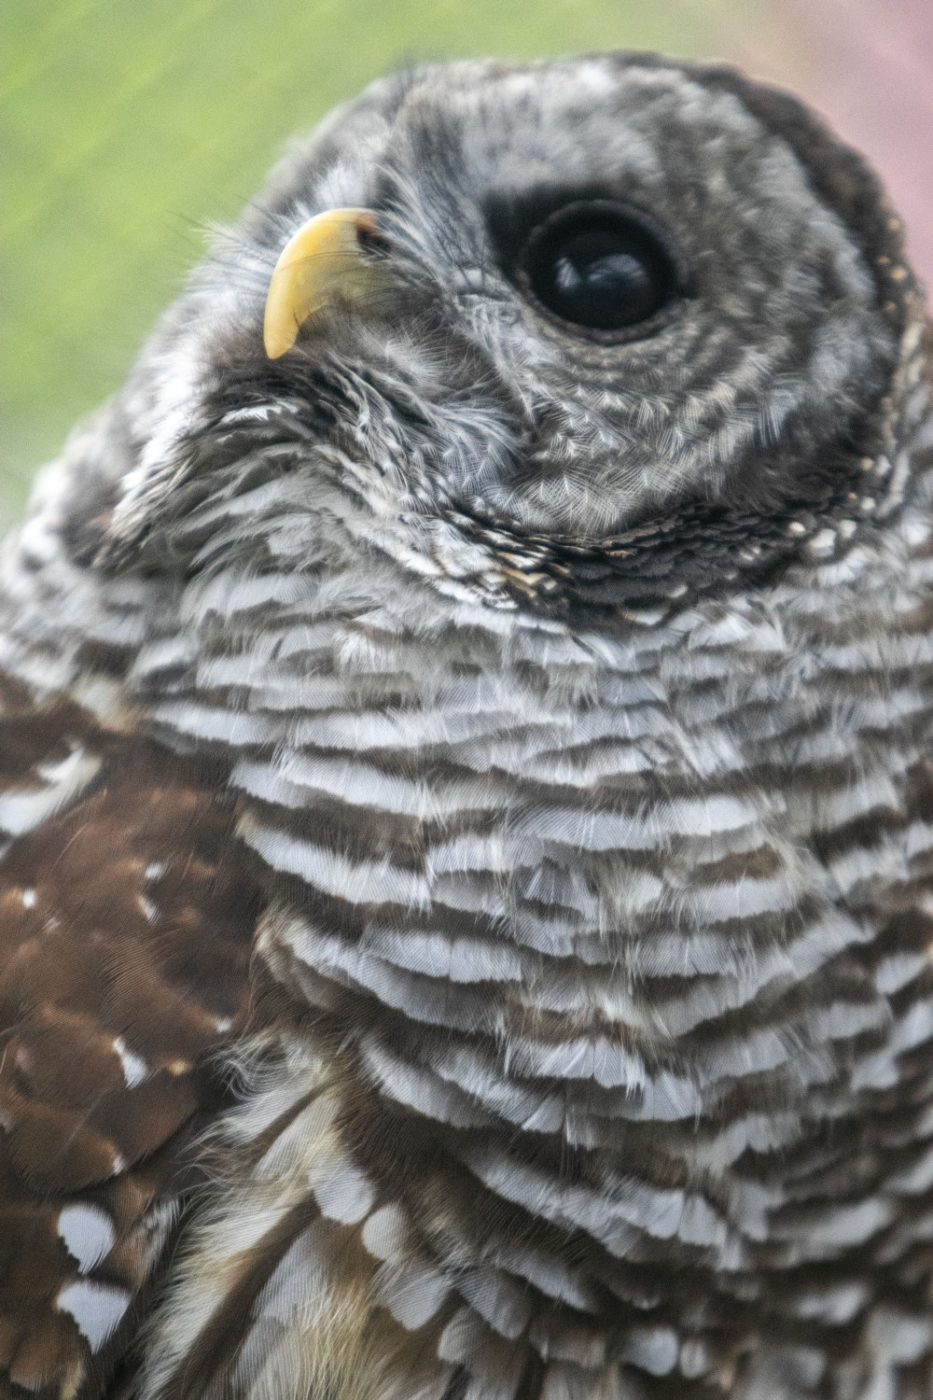 Olive the barred owl